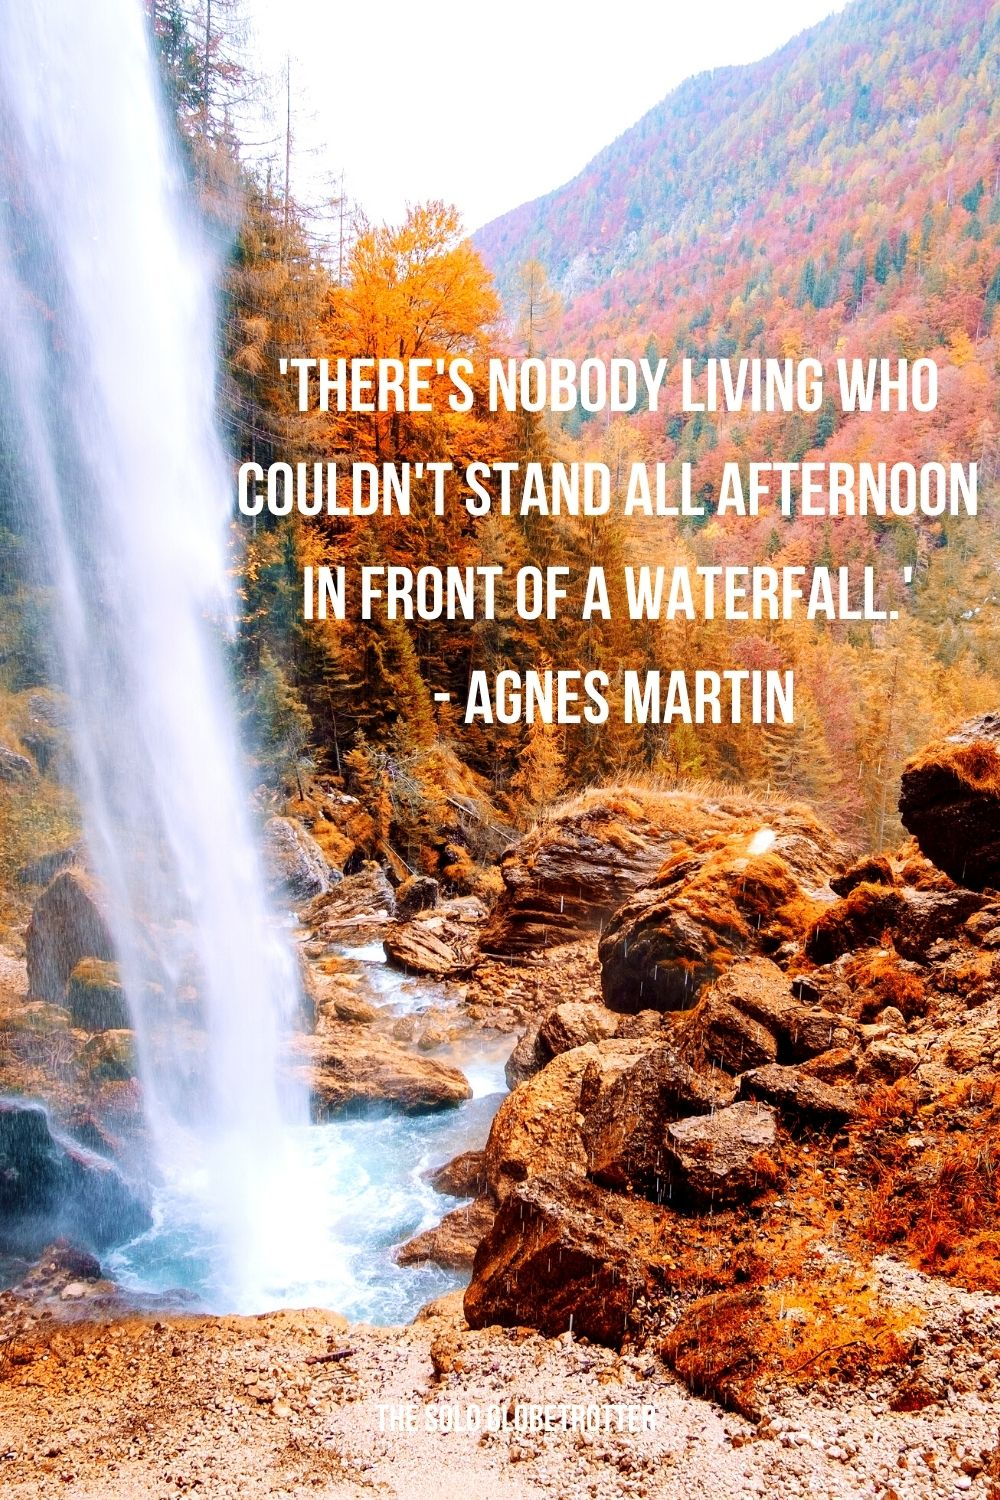 famous quotes about water